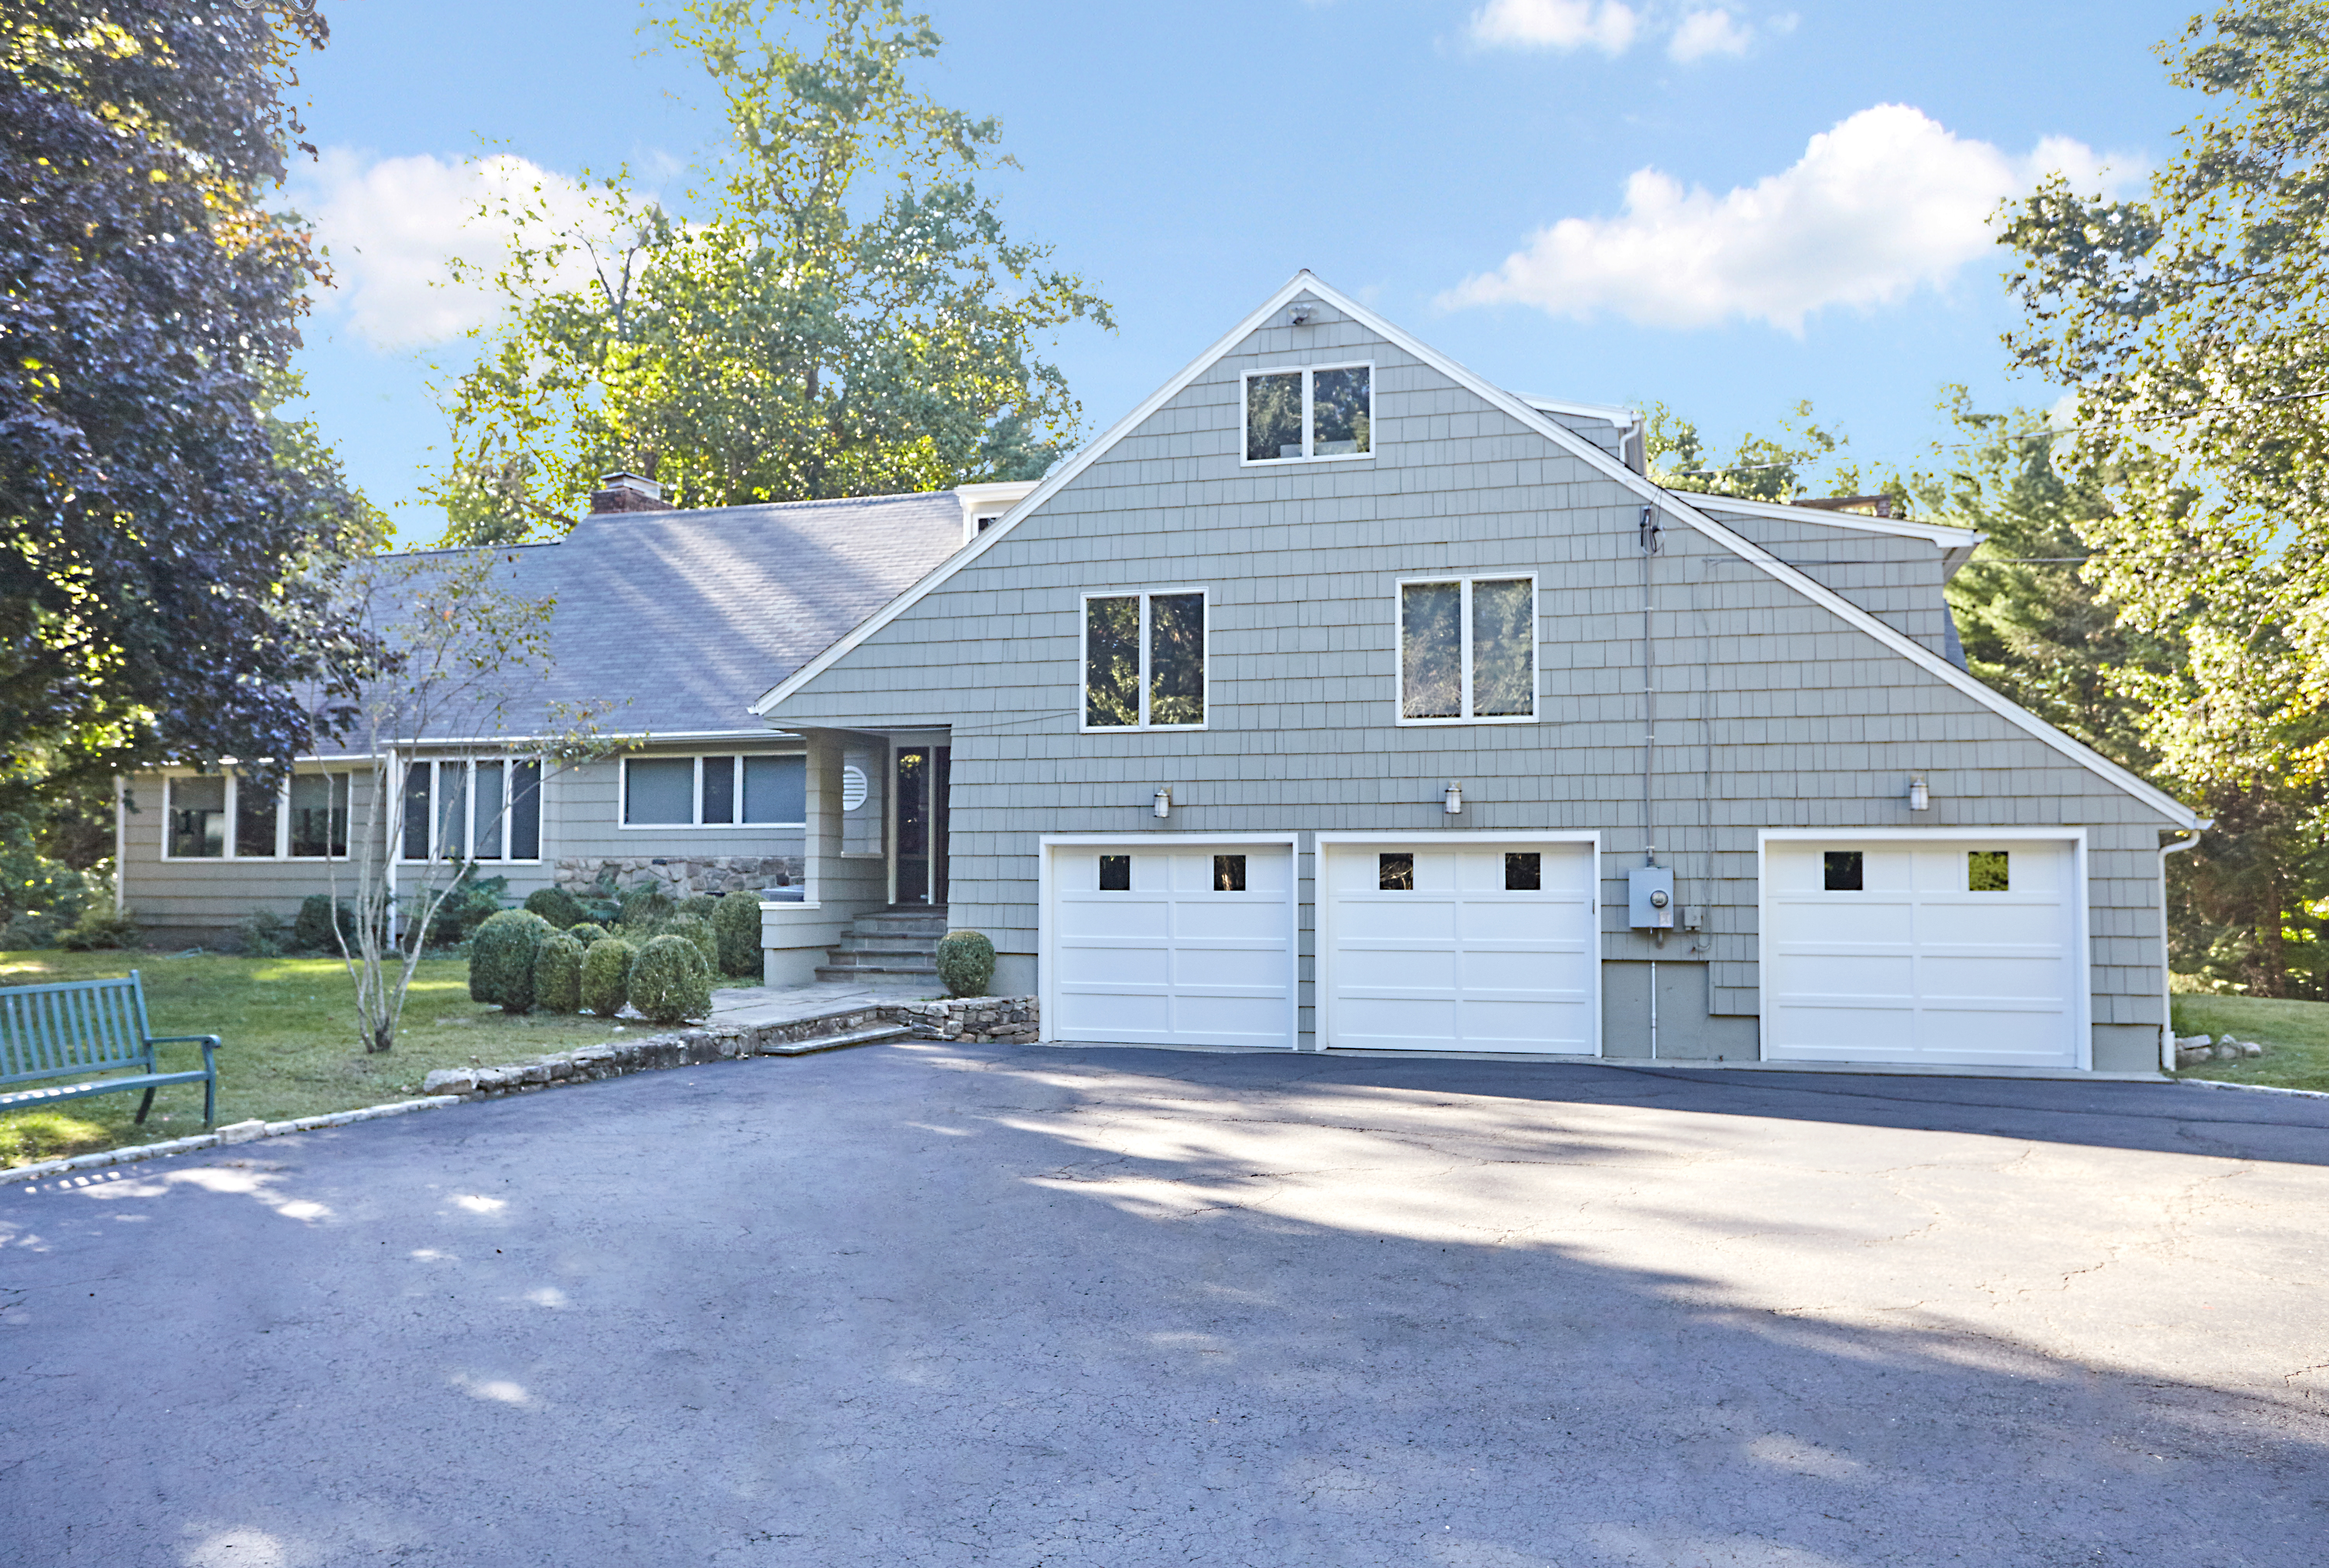 Single Family Home for Sale at Your Own Private Retreat 267 Sturges Highway Westport, Connecticut, 06880 United States